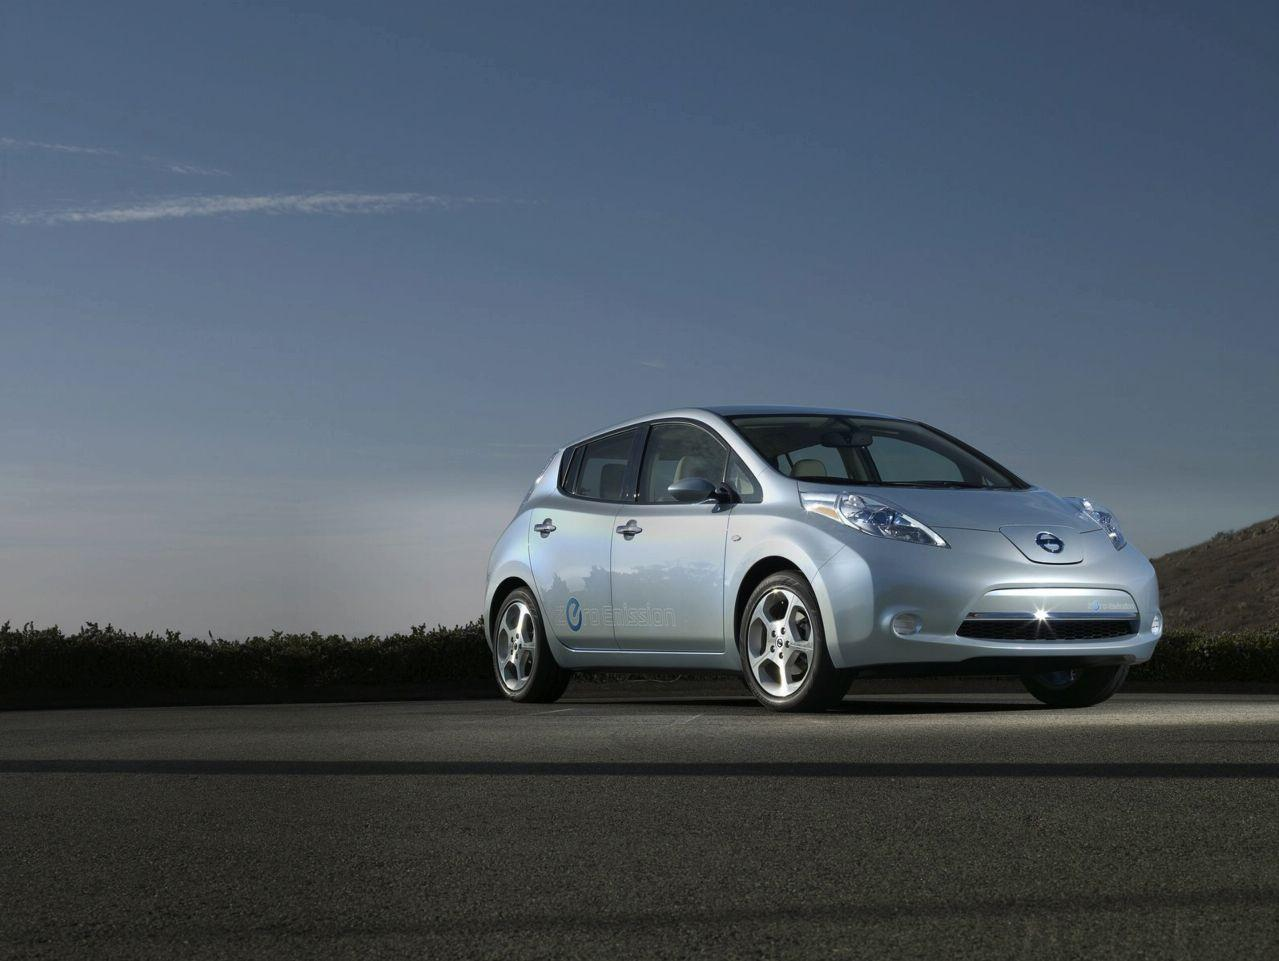 Sport Cars: Nissan Leaf Hd Wallpapers 2011